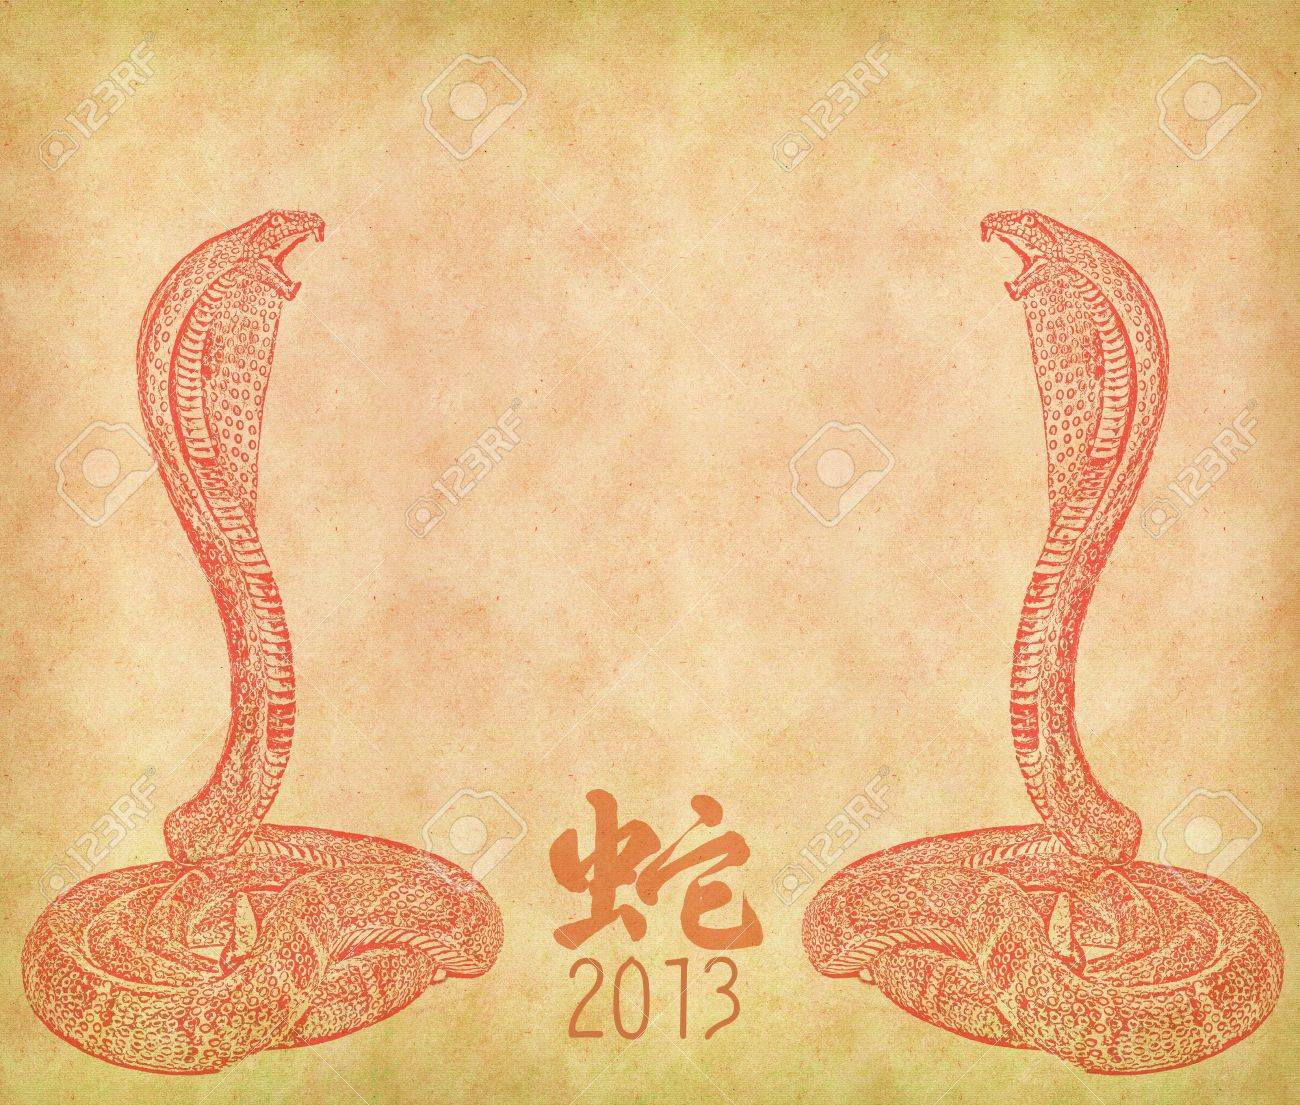 Year Of The Snake Design On Old Paper Background Chinese Calligraphy